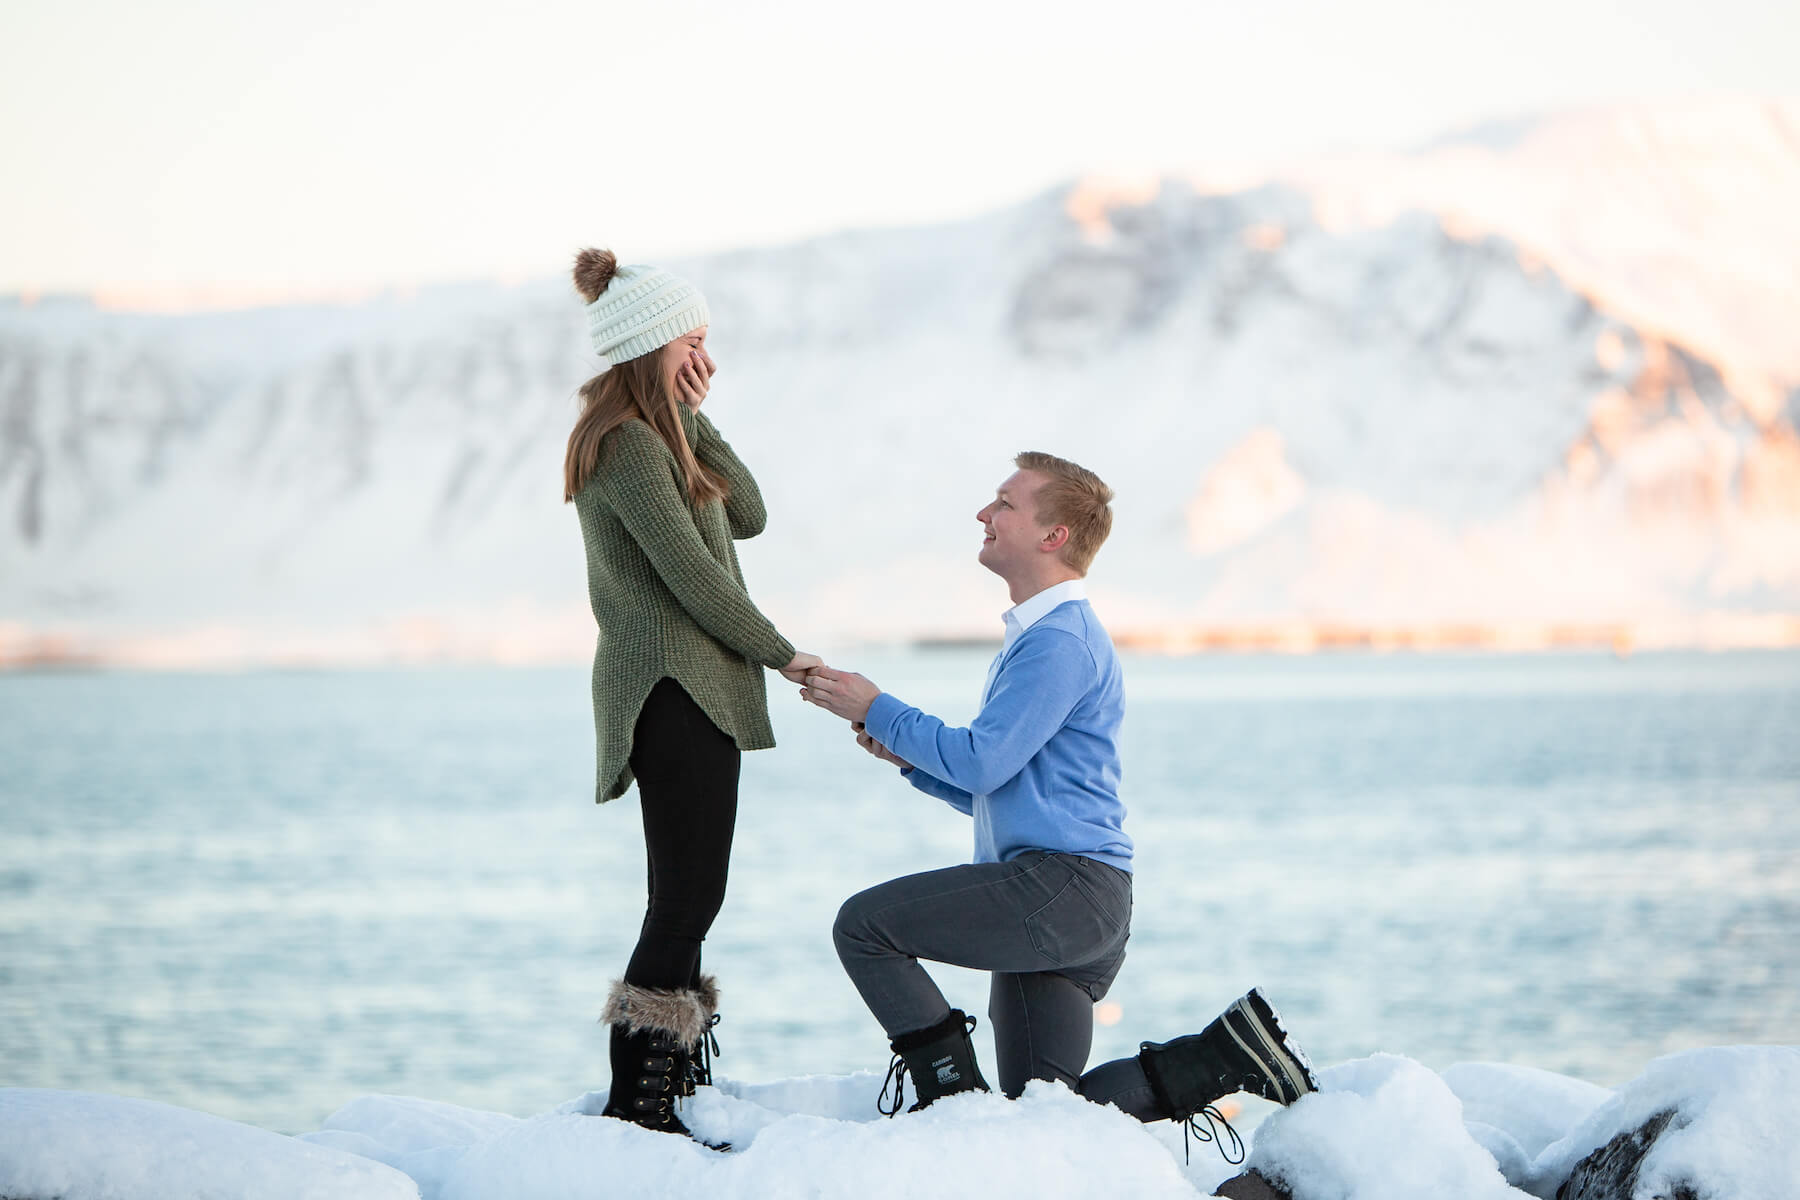 a man is proposing to the woman, standing in the snow in Reykjavik, Iceland